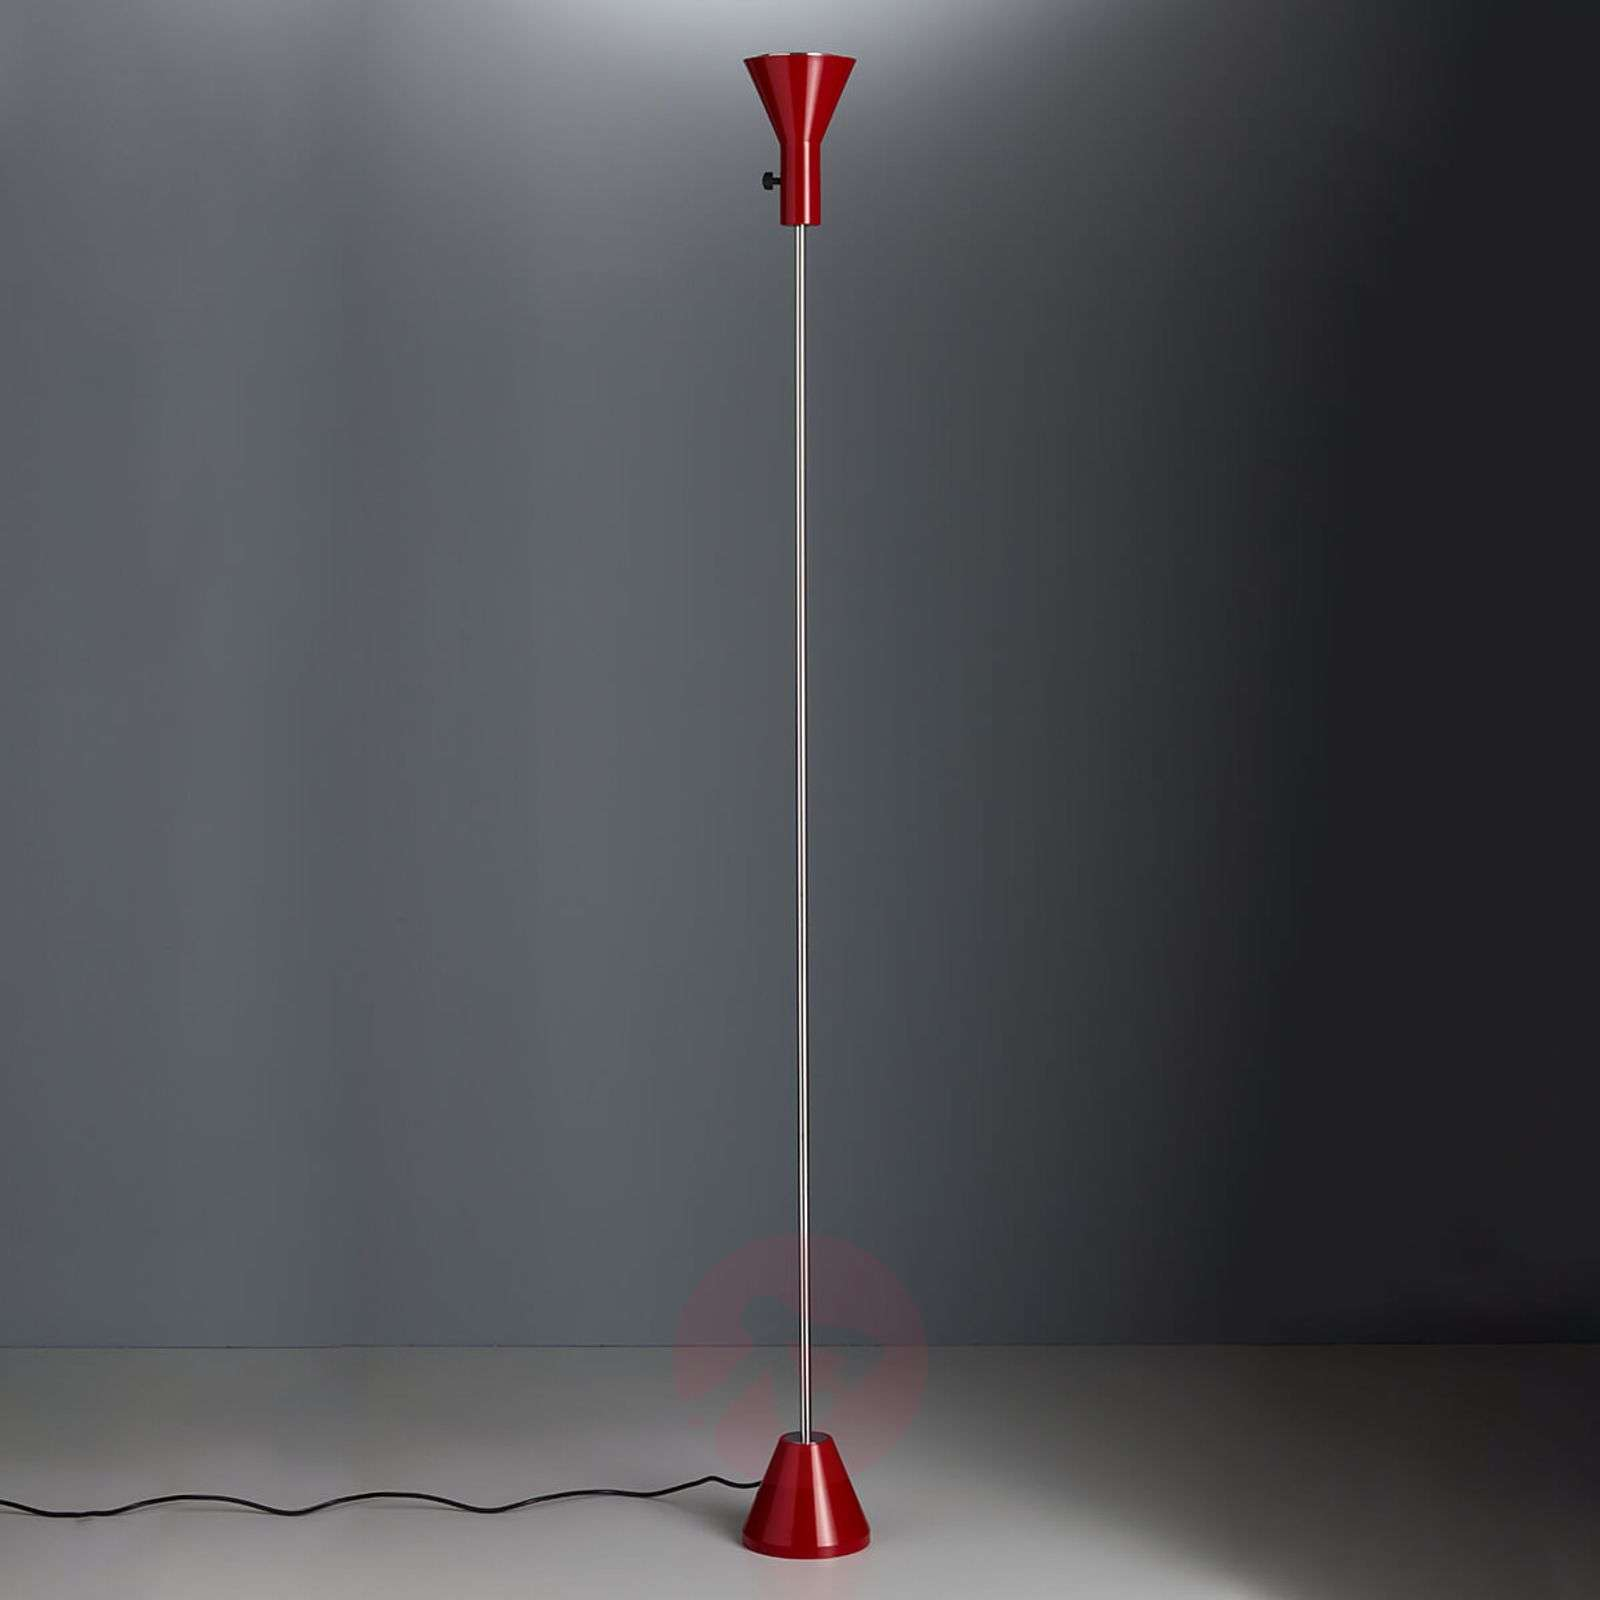 Dimbare led vloerlamp Gru in rood